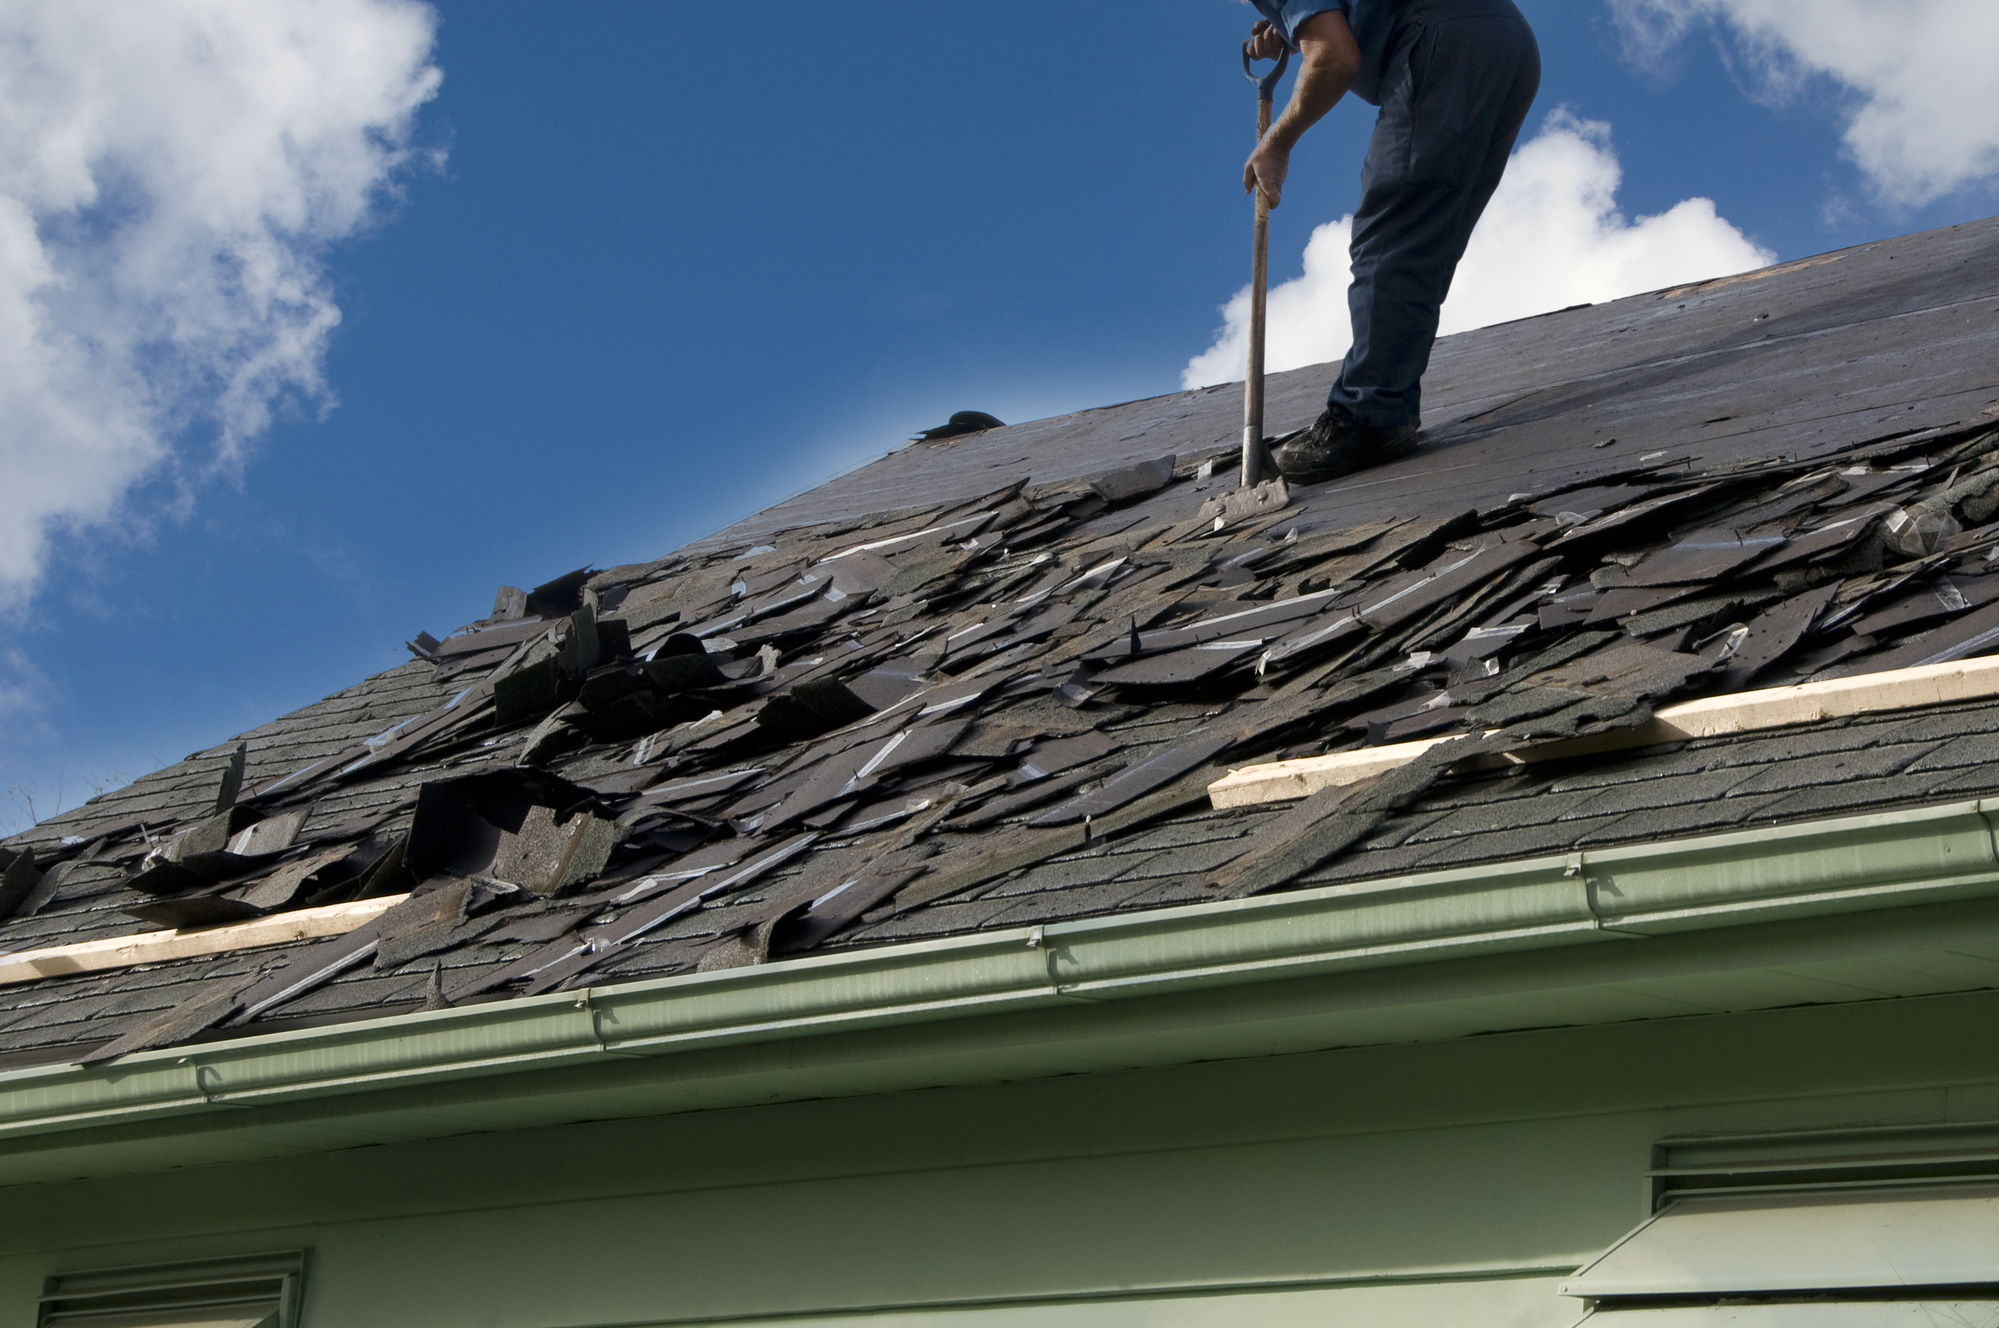 Roof repair from hail damage